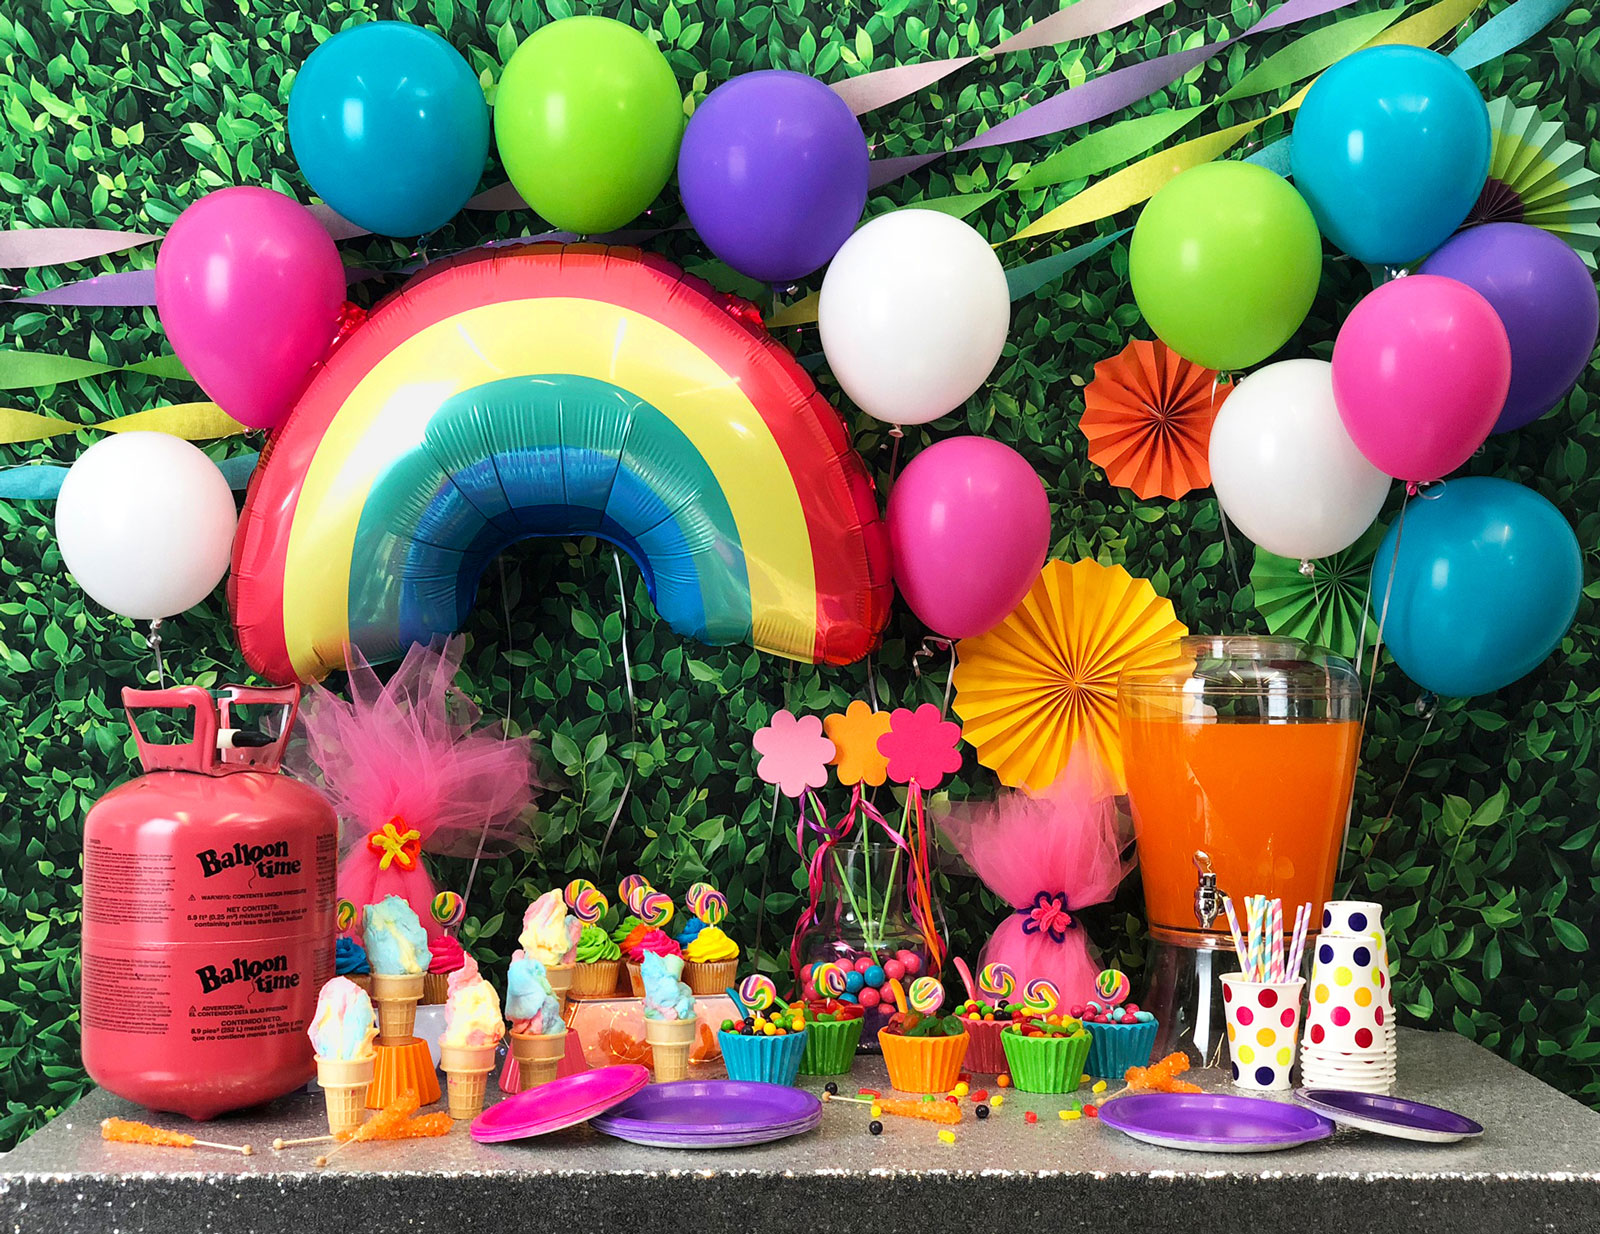 Trolls themed party decorations